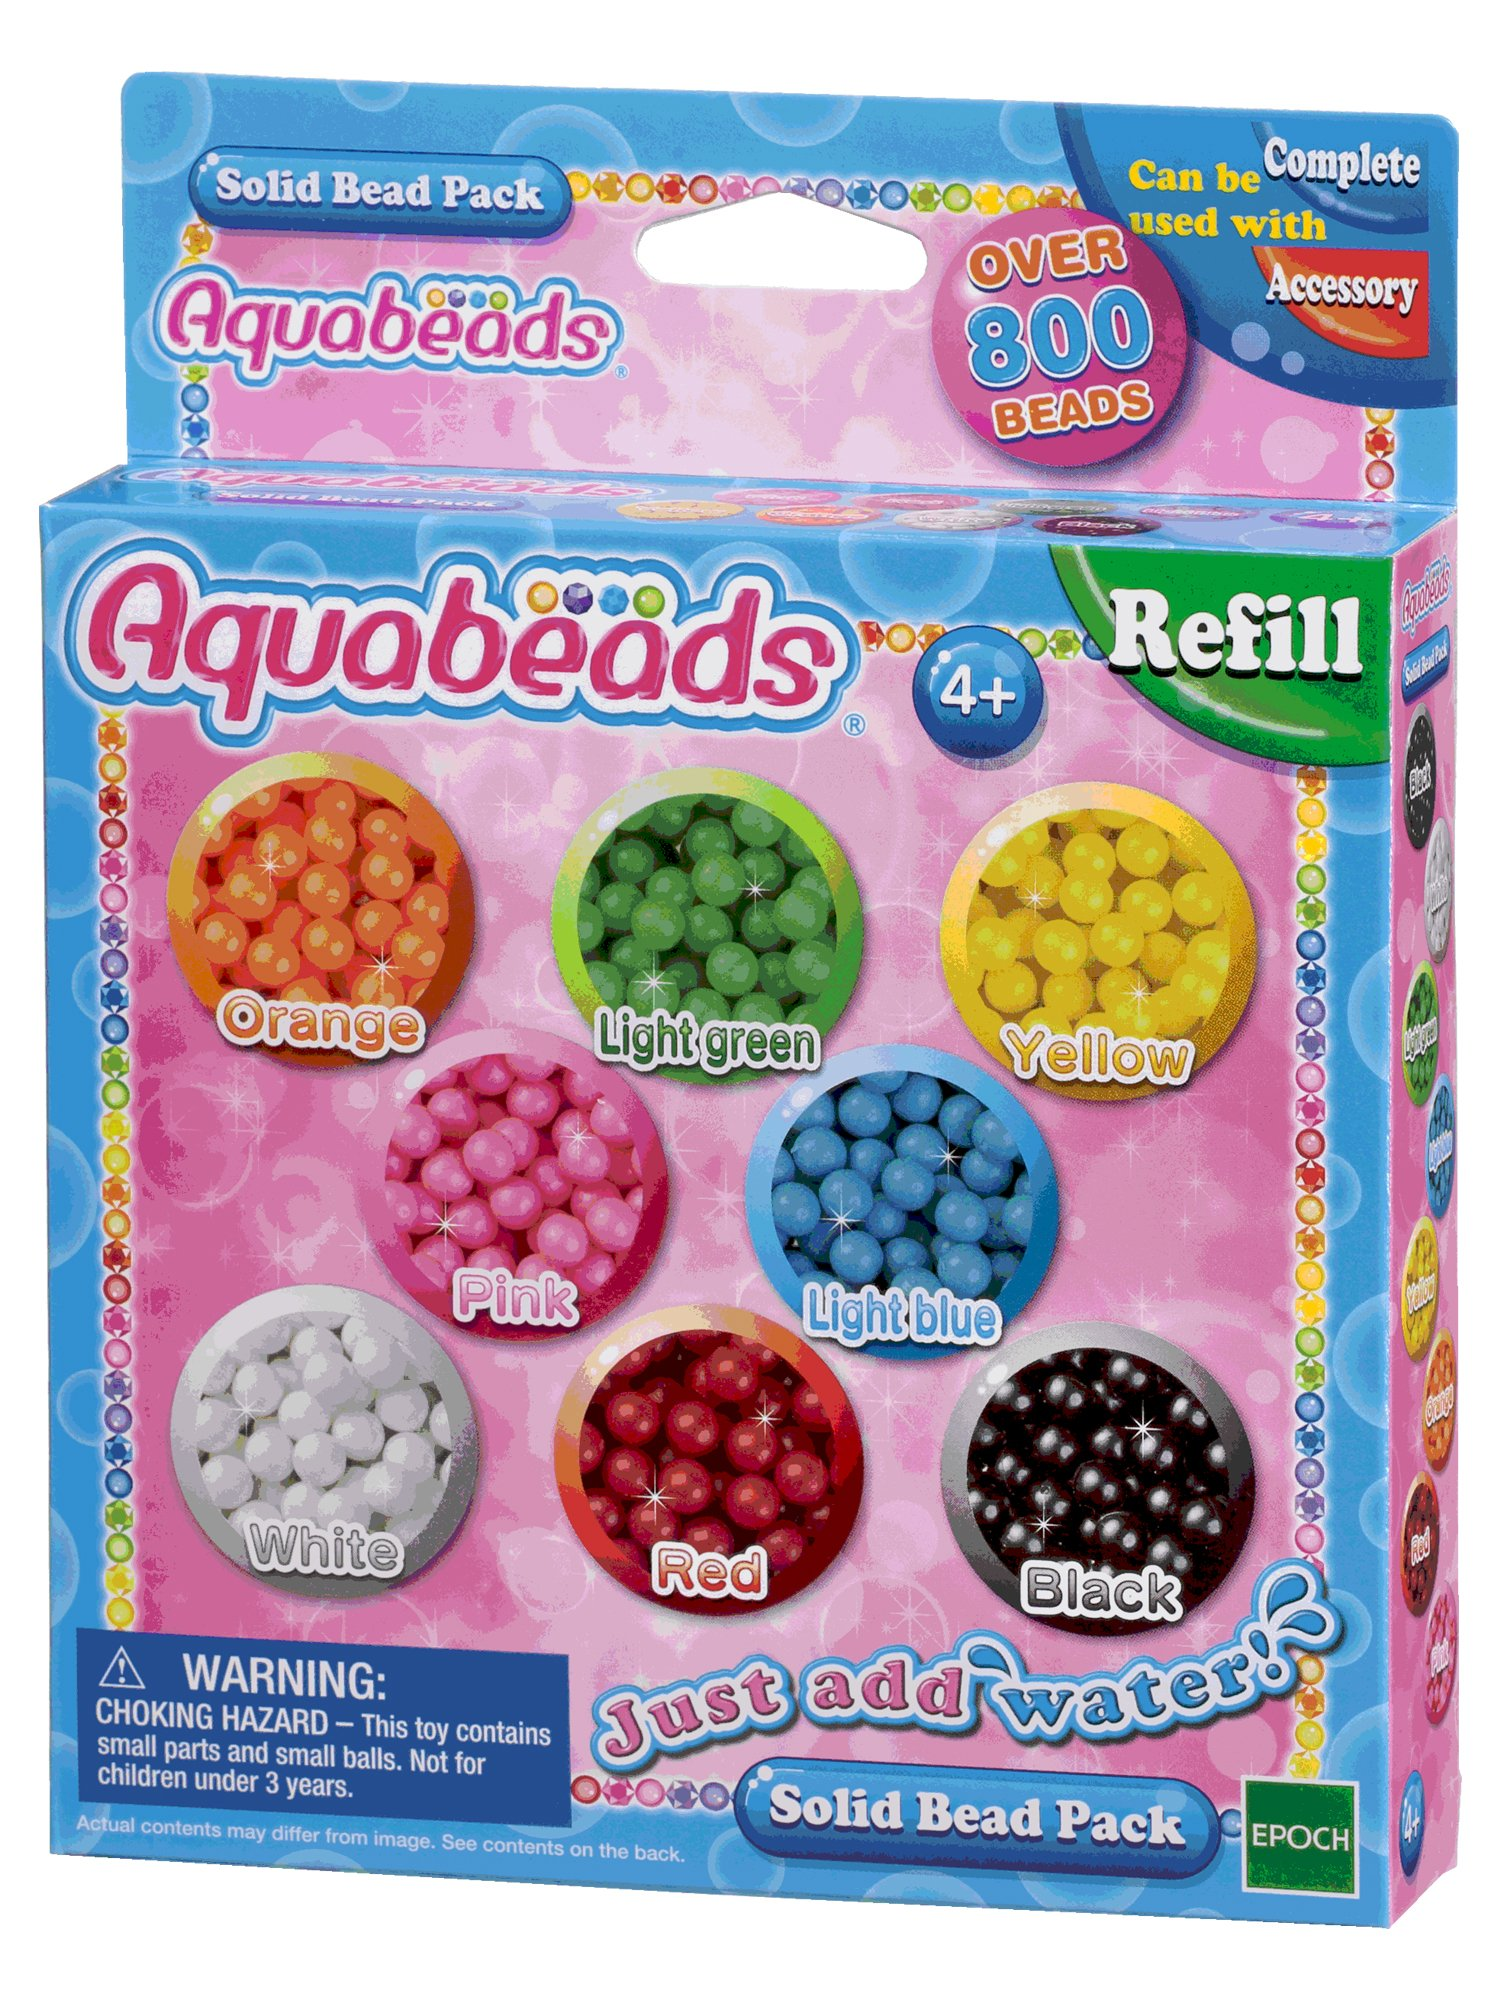 Aquabeads-79168 Solid Bead Pack Epoch para Imaginar 79168 product image